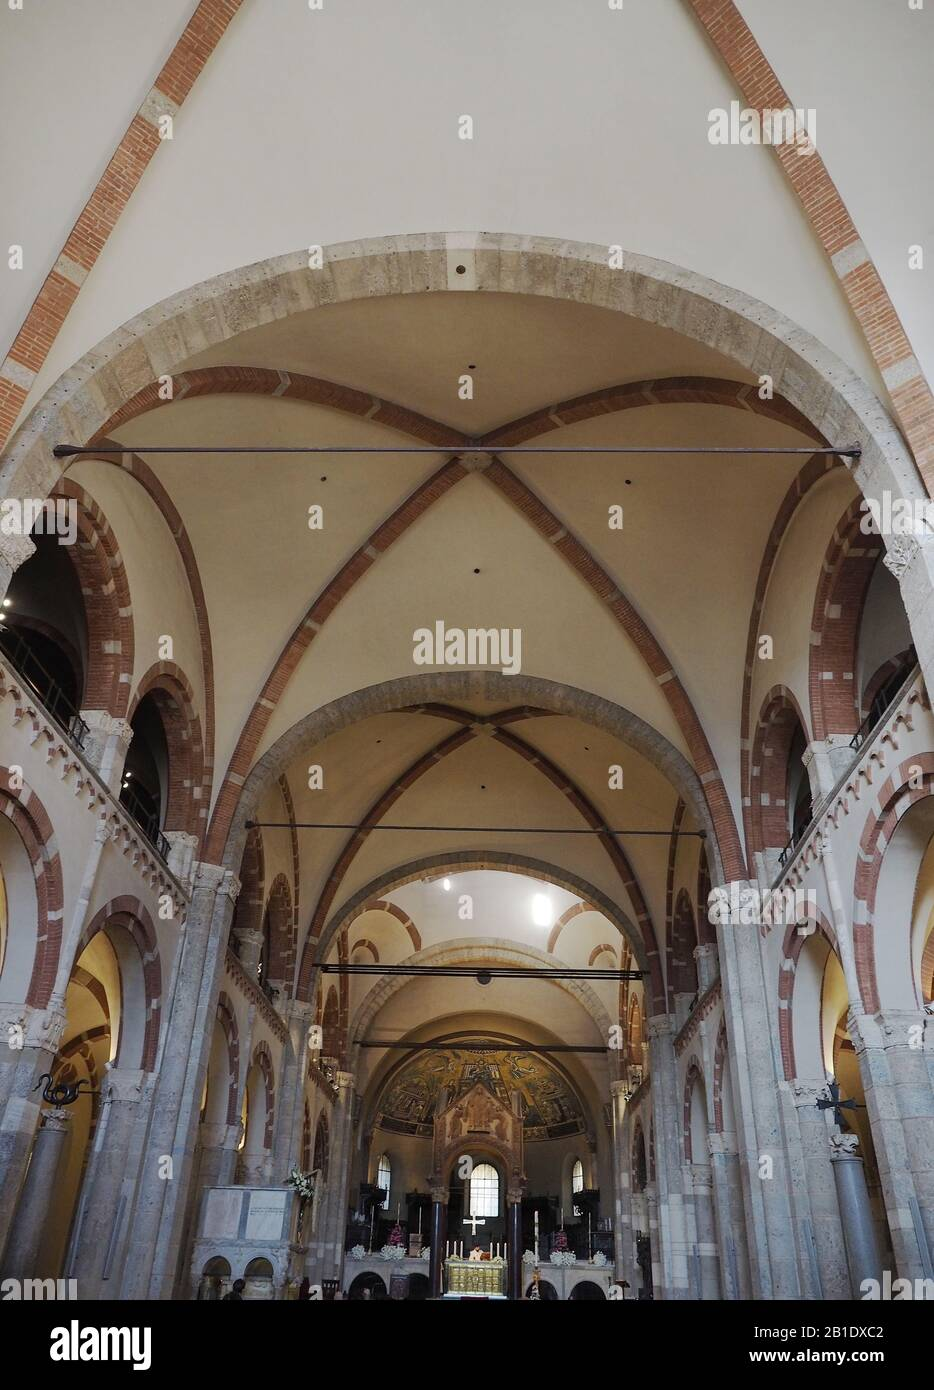 Europe, Italy, Lombardy, Milan, Abbey of S. Ambrogio. Early Christian and medieval Romanesque church. Stock Photo